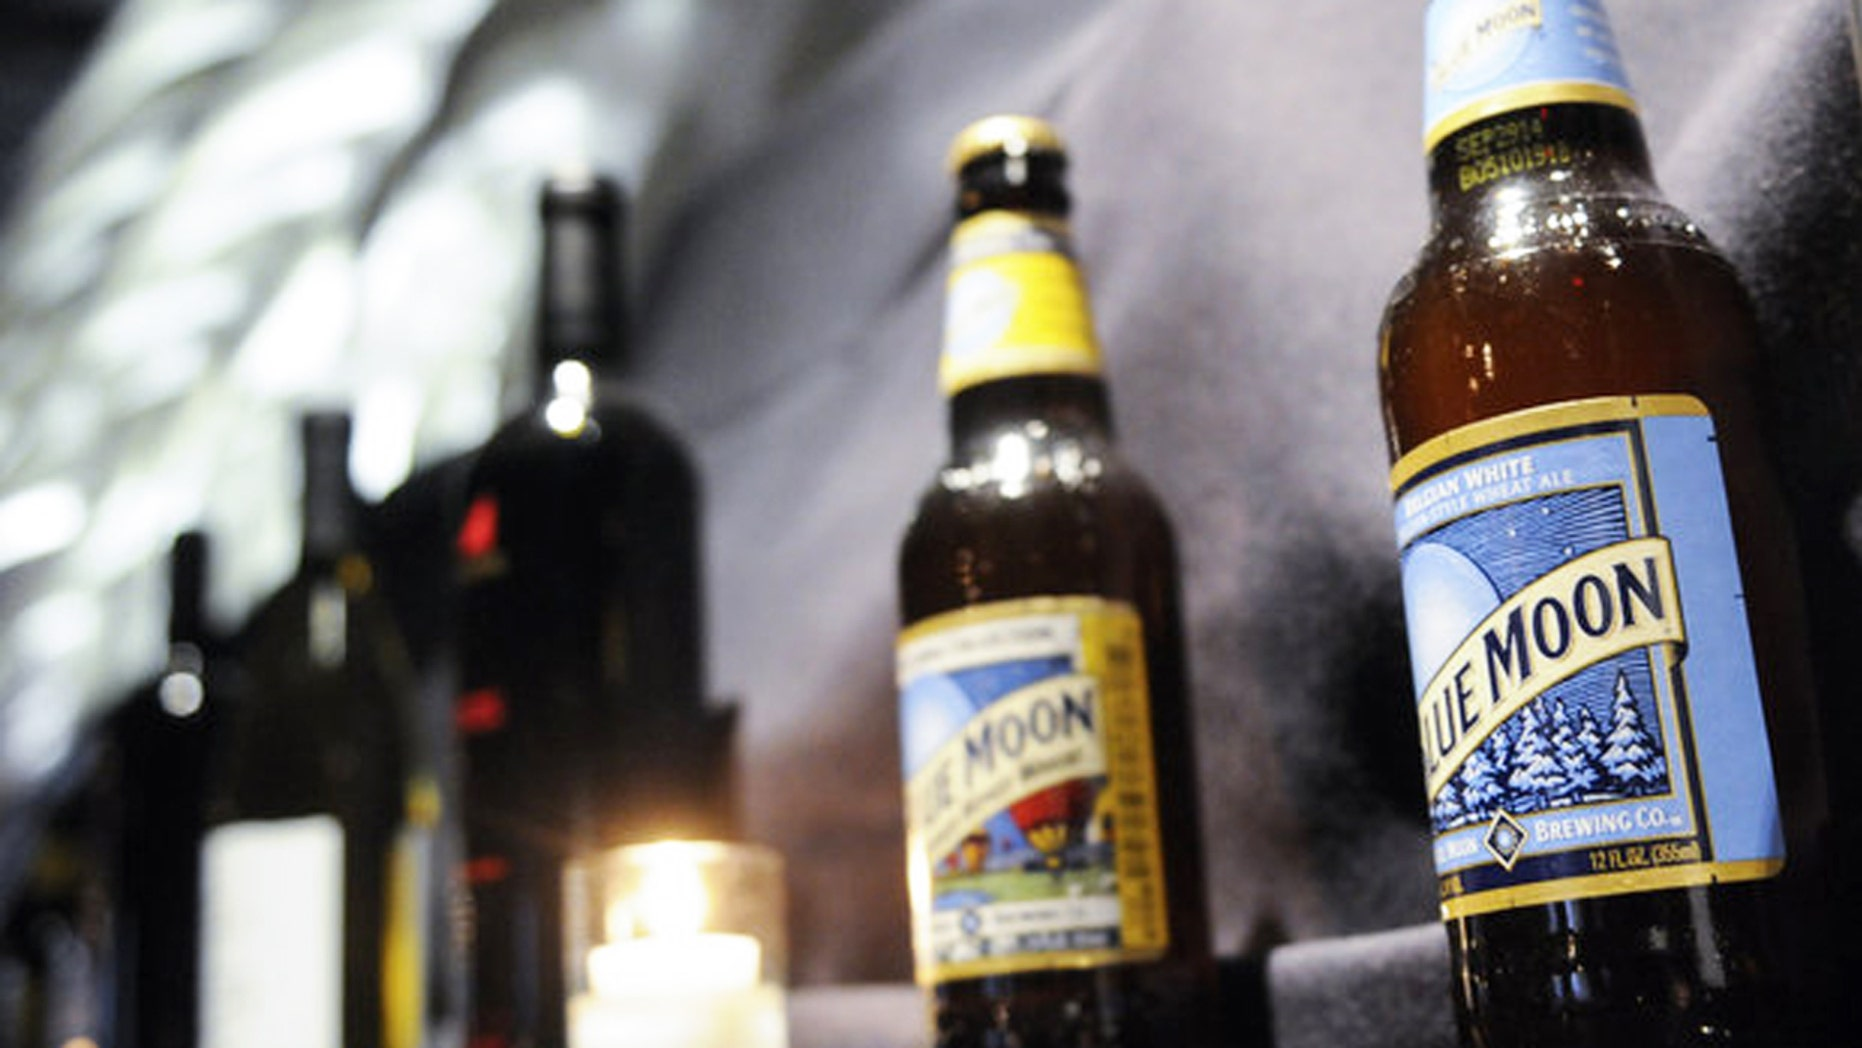 MillerCoors, the makers of Blue Moon and dozens of other beer brands, has agreed to adding nutritional information to its product labels.